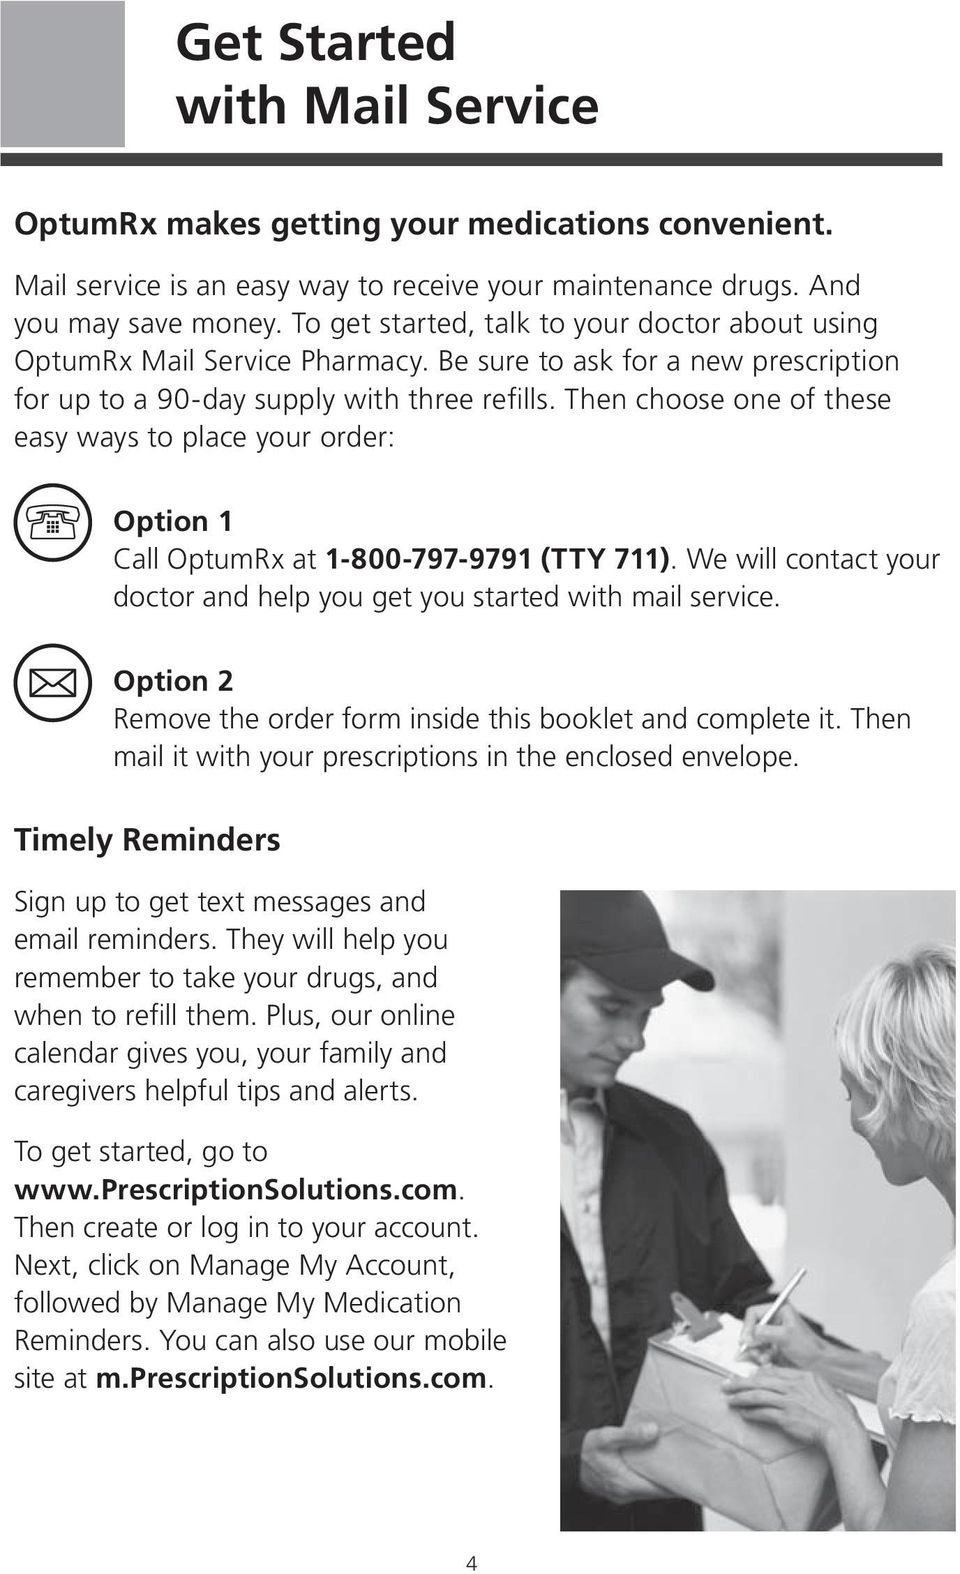 Then choose one of these easy ways to place your order: Option 1 Call OptumRx at 1-800-797-9791 (TTY 711). We will contact your doctor and help you get you started with mail service.